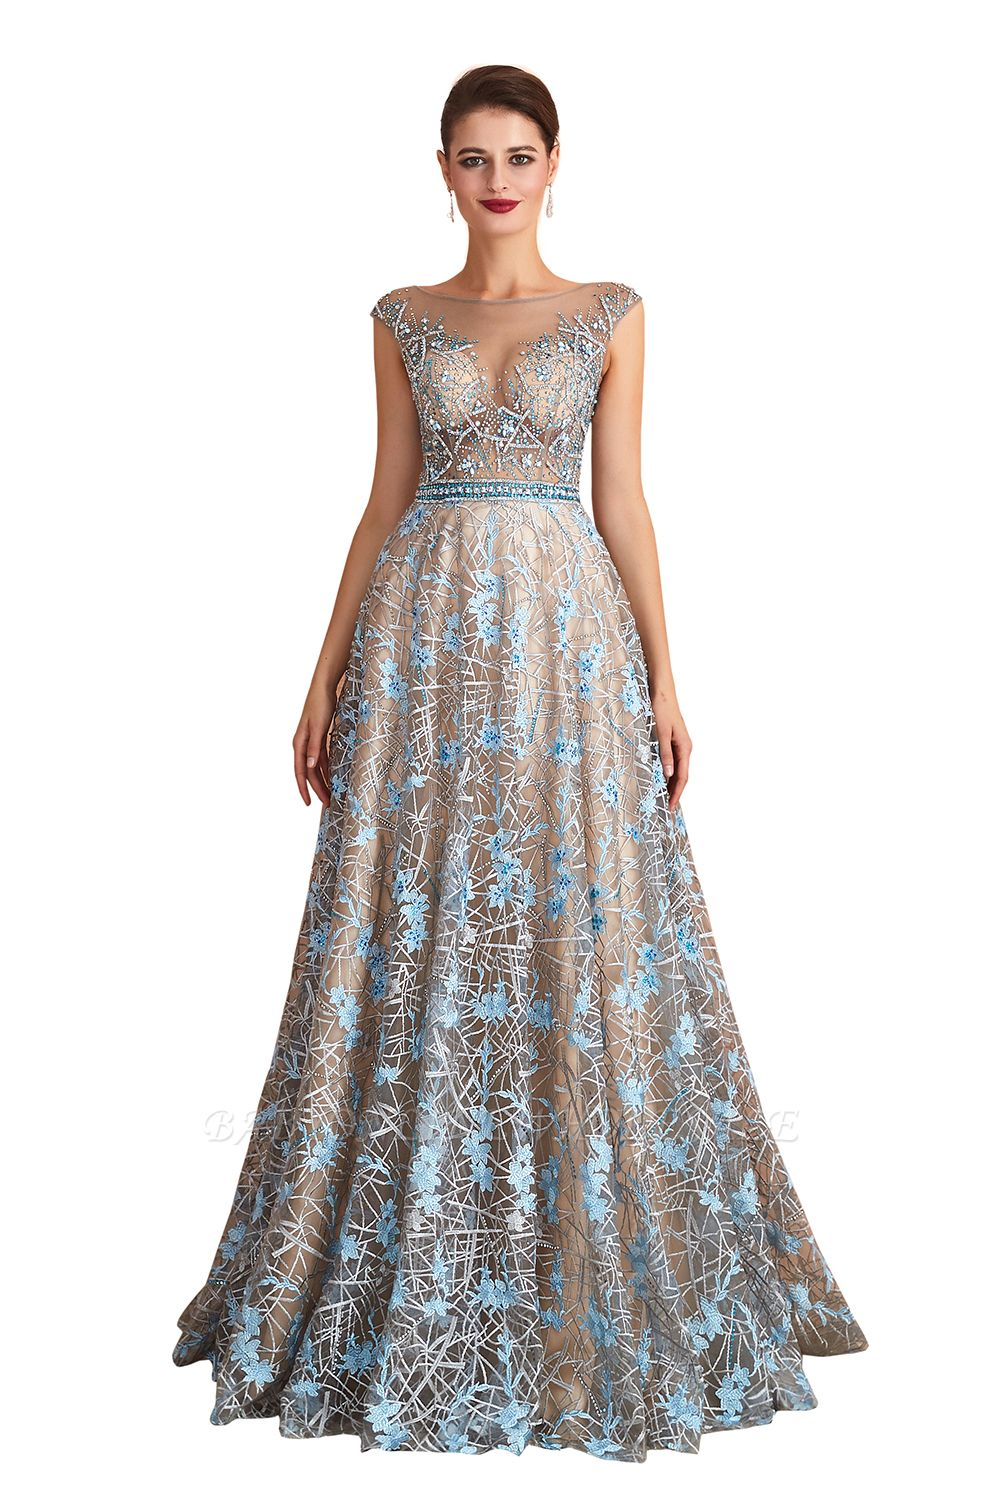 Celandine | Expensive Cap Sleeve See-through Prom Dress with Sky Blue Appliques, Unique Luxury Design Long Evening Dress Online